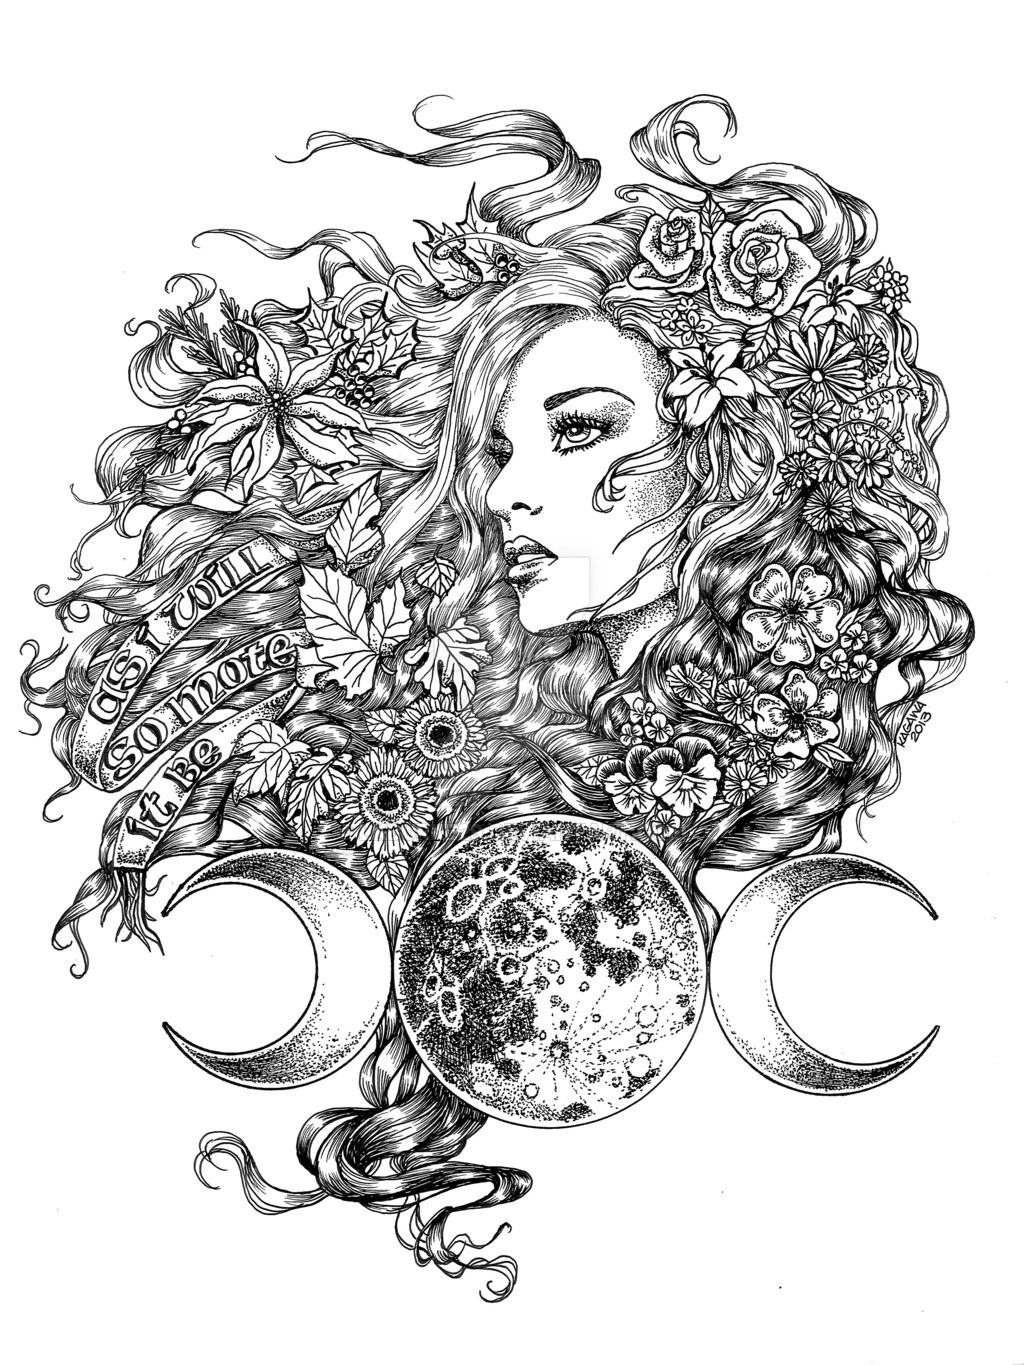 This Drawing Is A Representation Of The Triple Moon Goddess The Seasons Are Reflected Throughout Her Hair Autumn Leaves S Goddess Tattoo Wiccan Tattoos Art